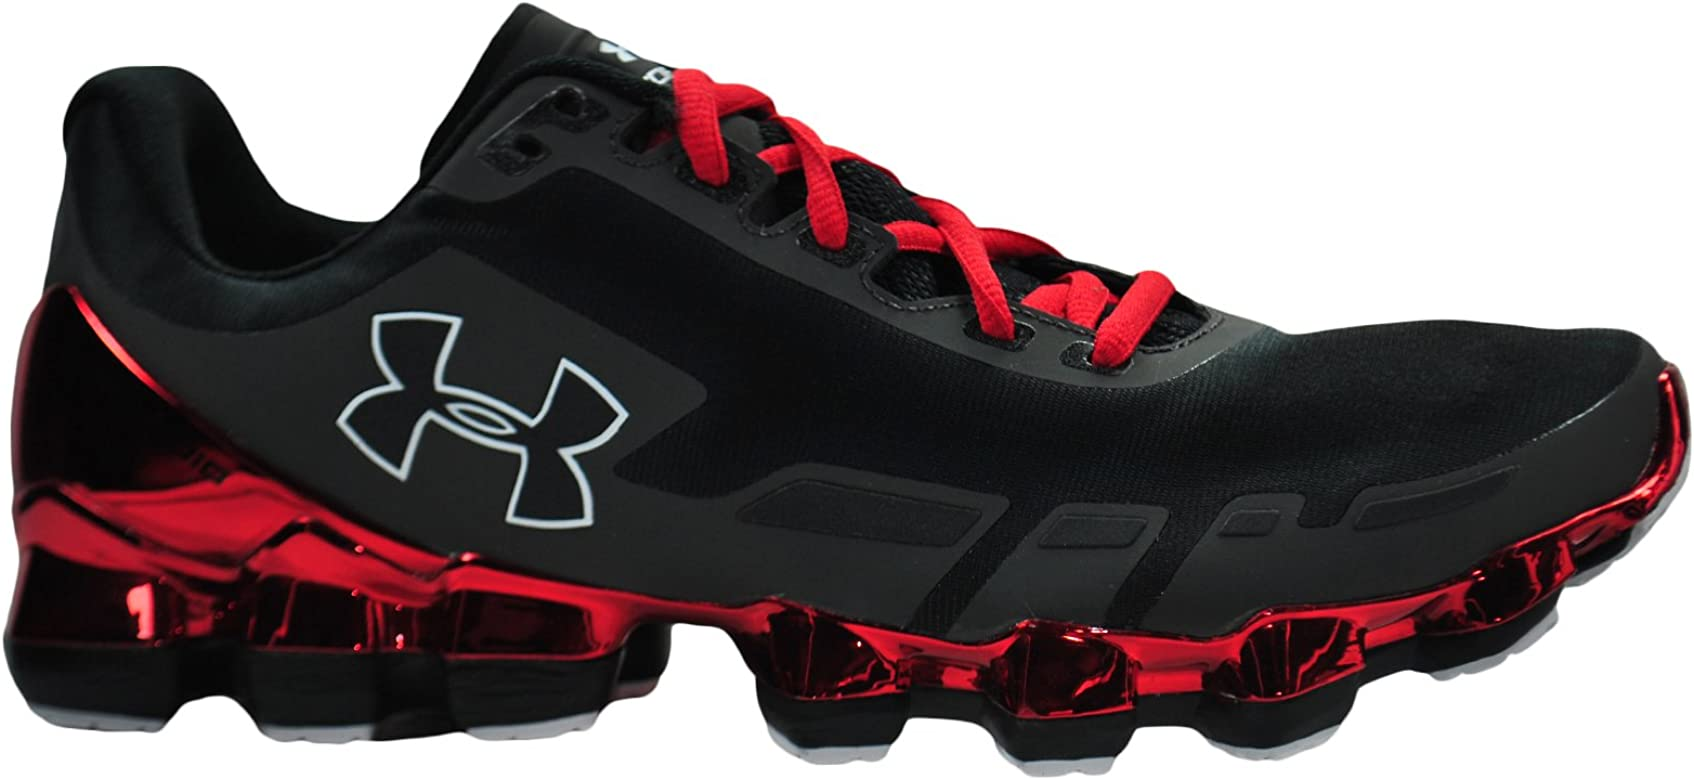 cfb7f856832f3 Amazon.com | Under Armour Men's UA Scorpio Chrome Running Shoes 10.5 ...